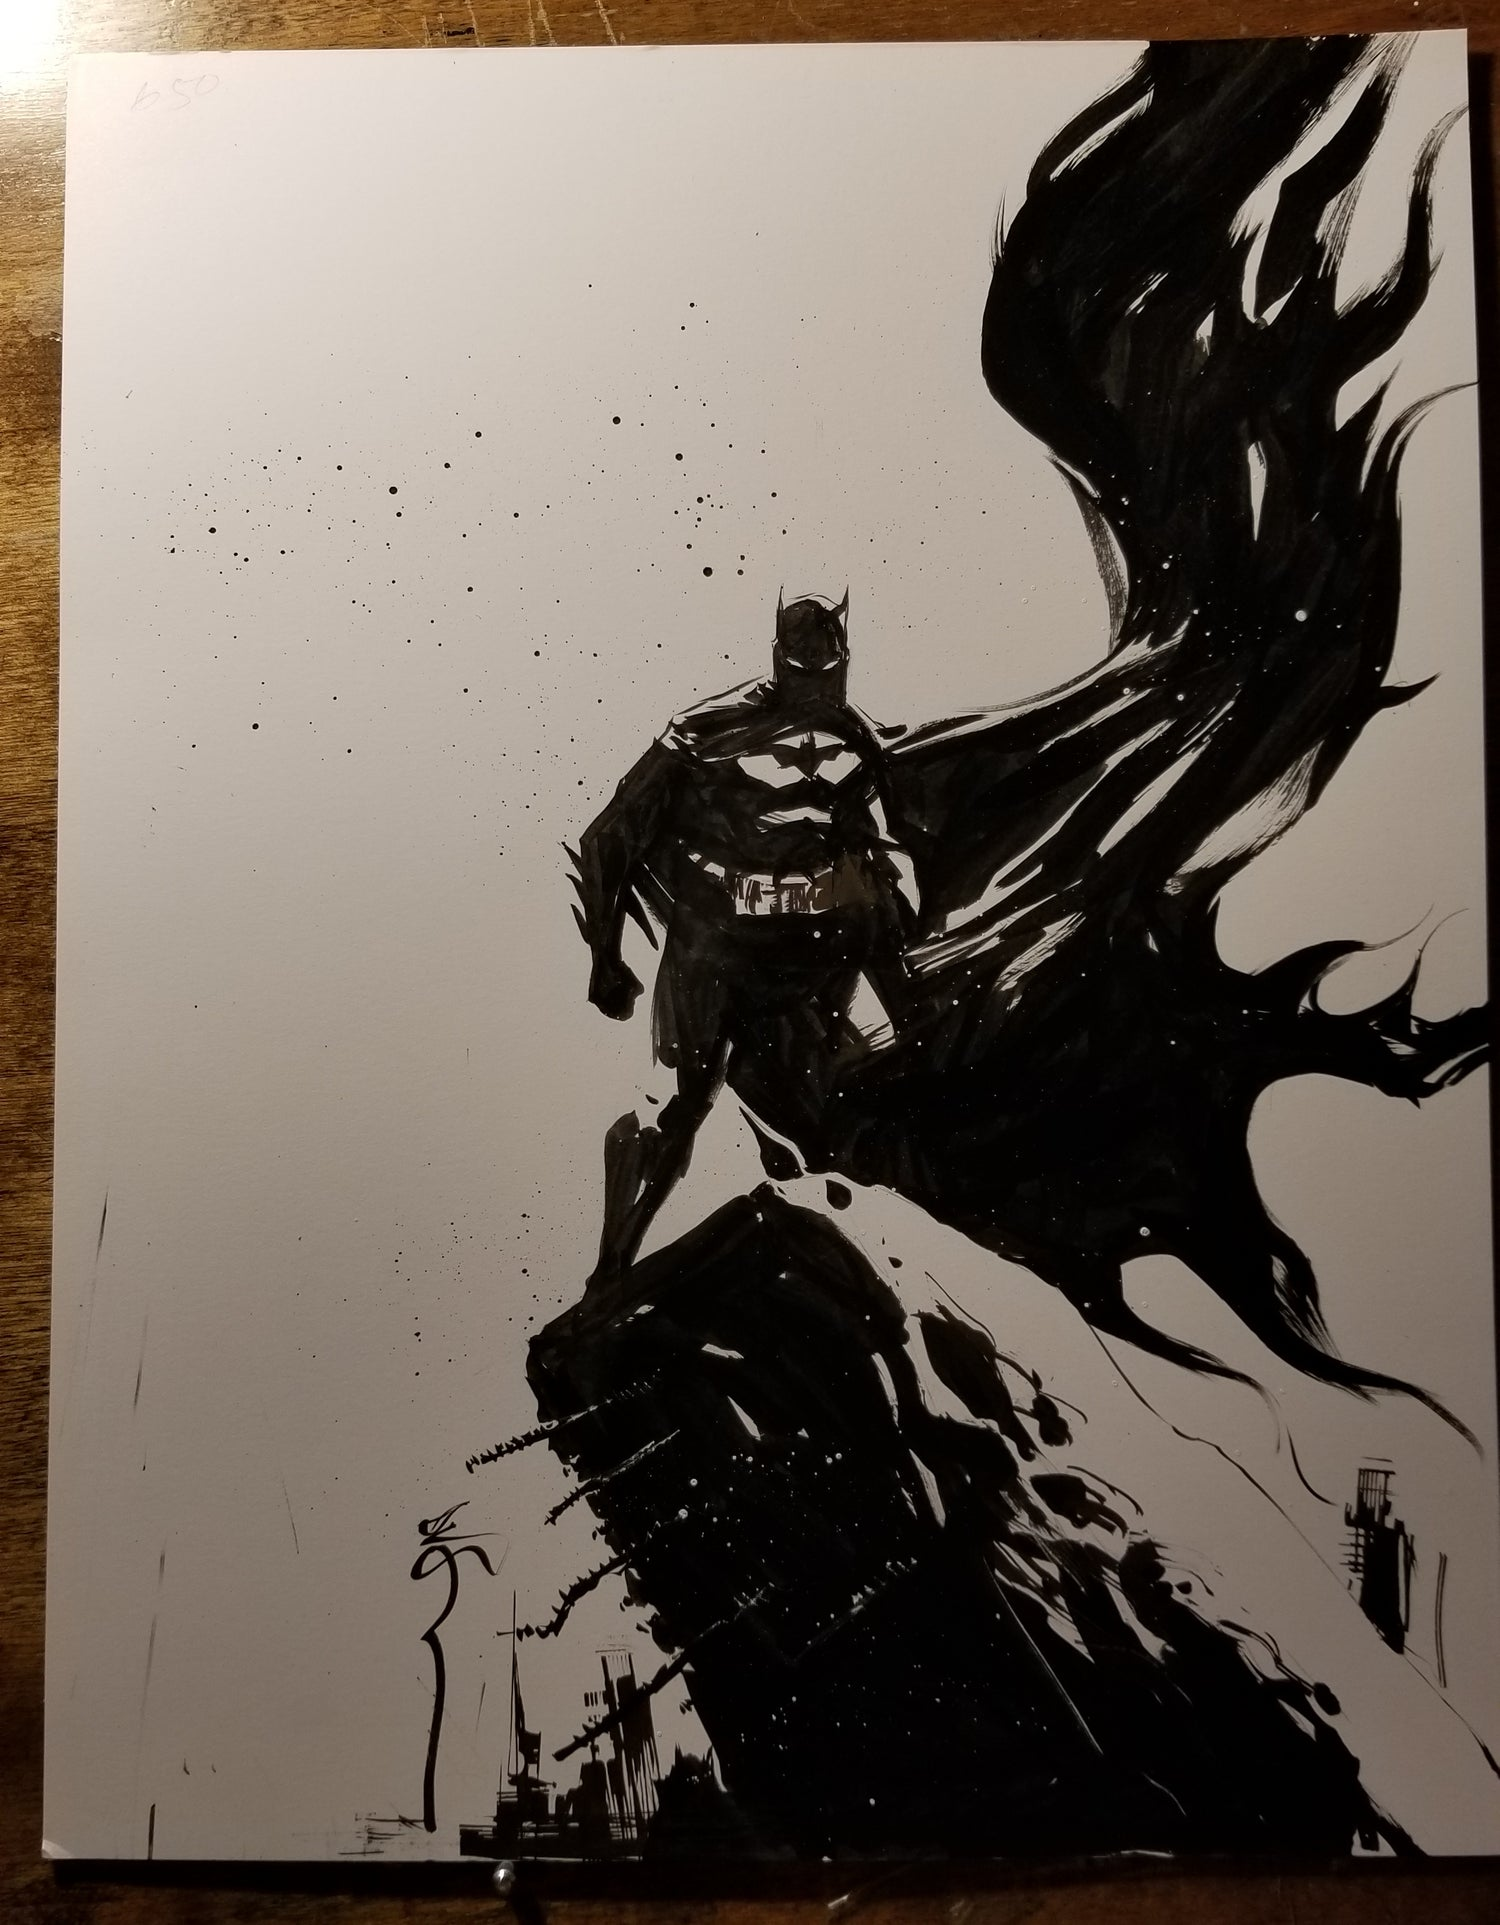 Image of Batman with the good cape